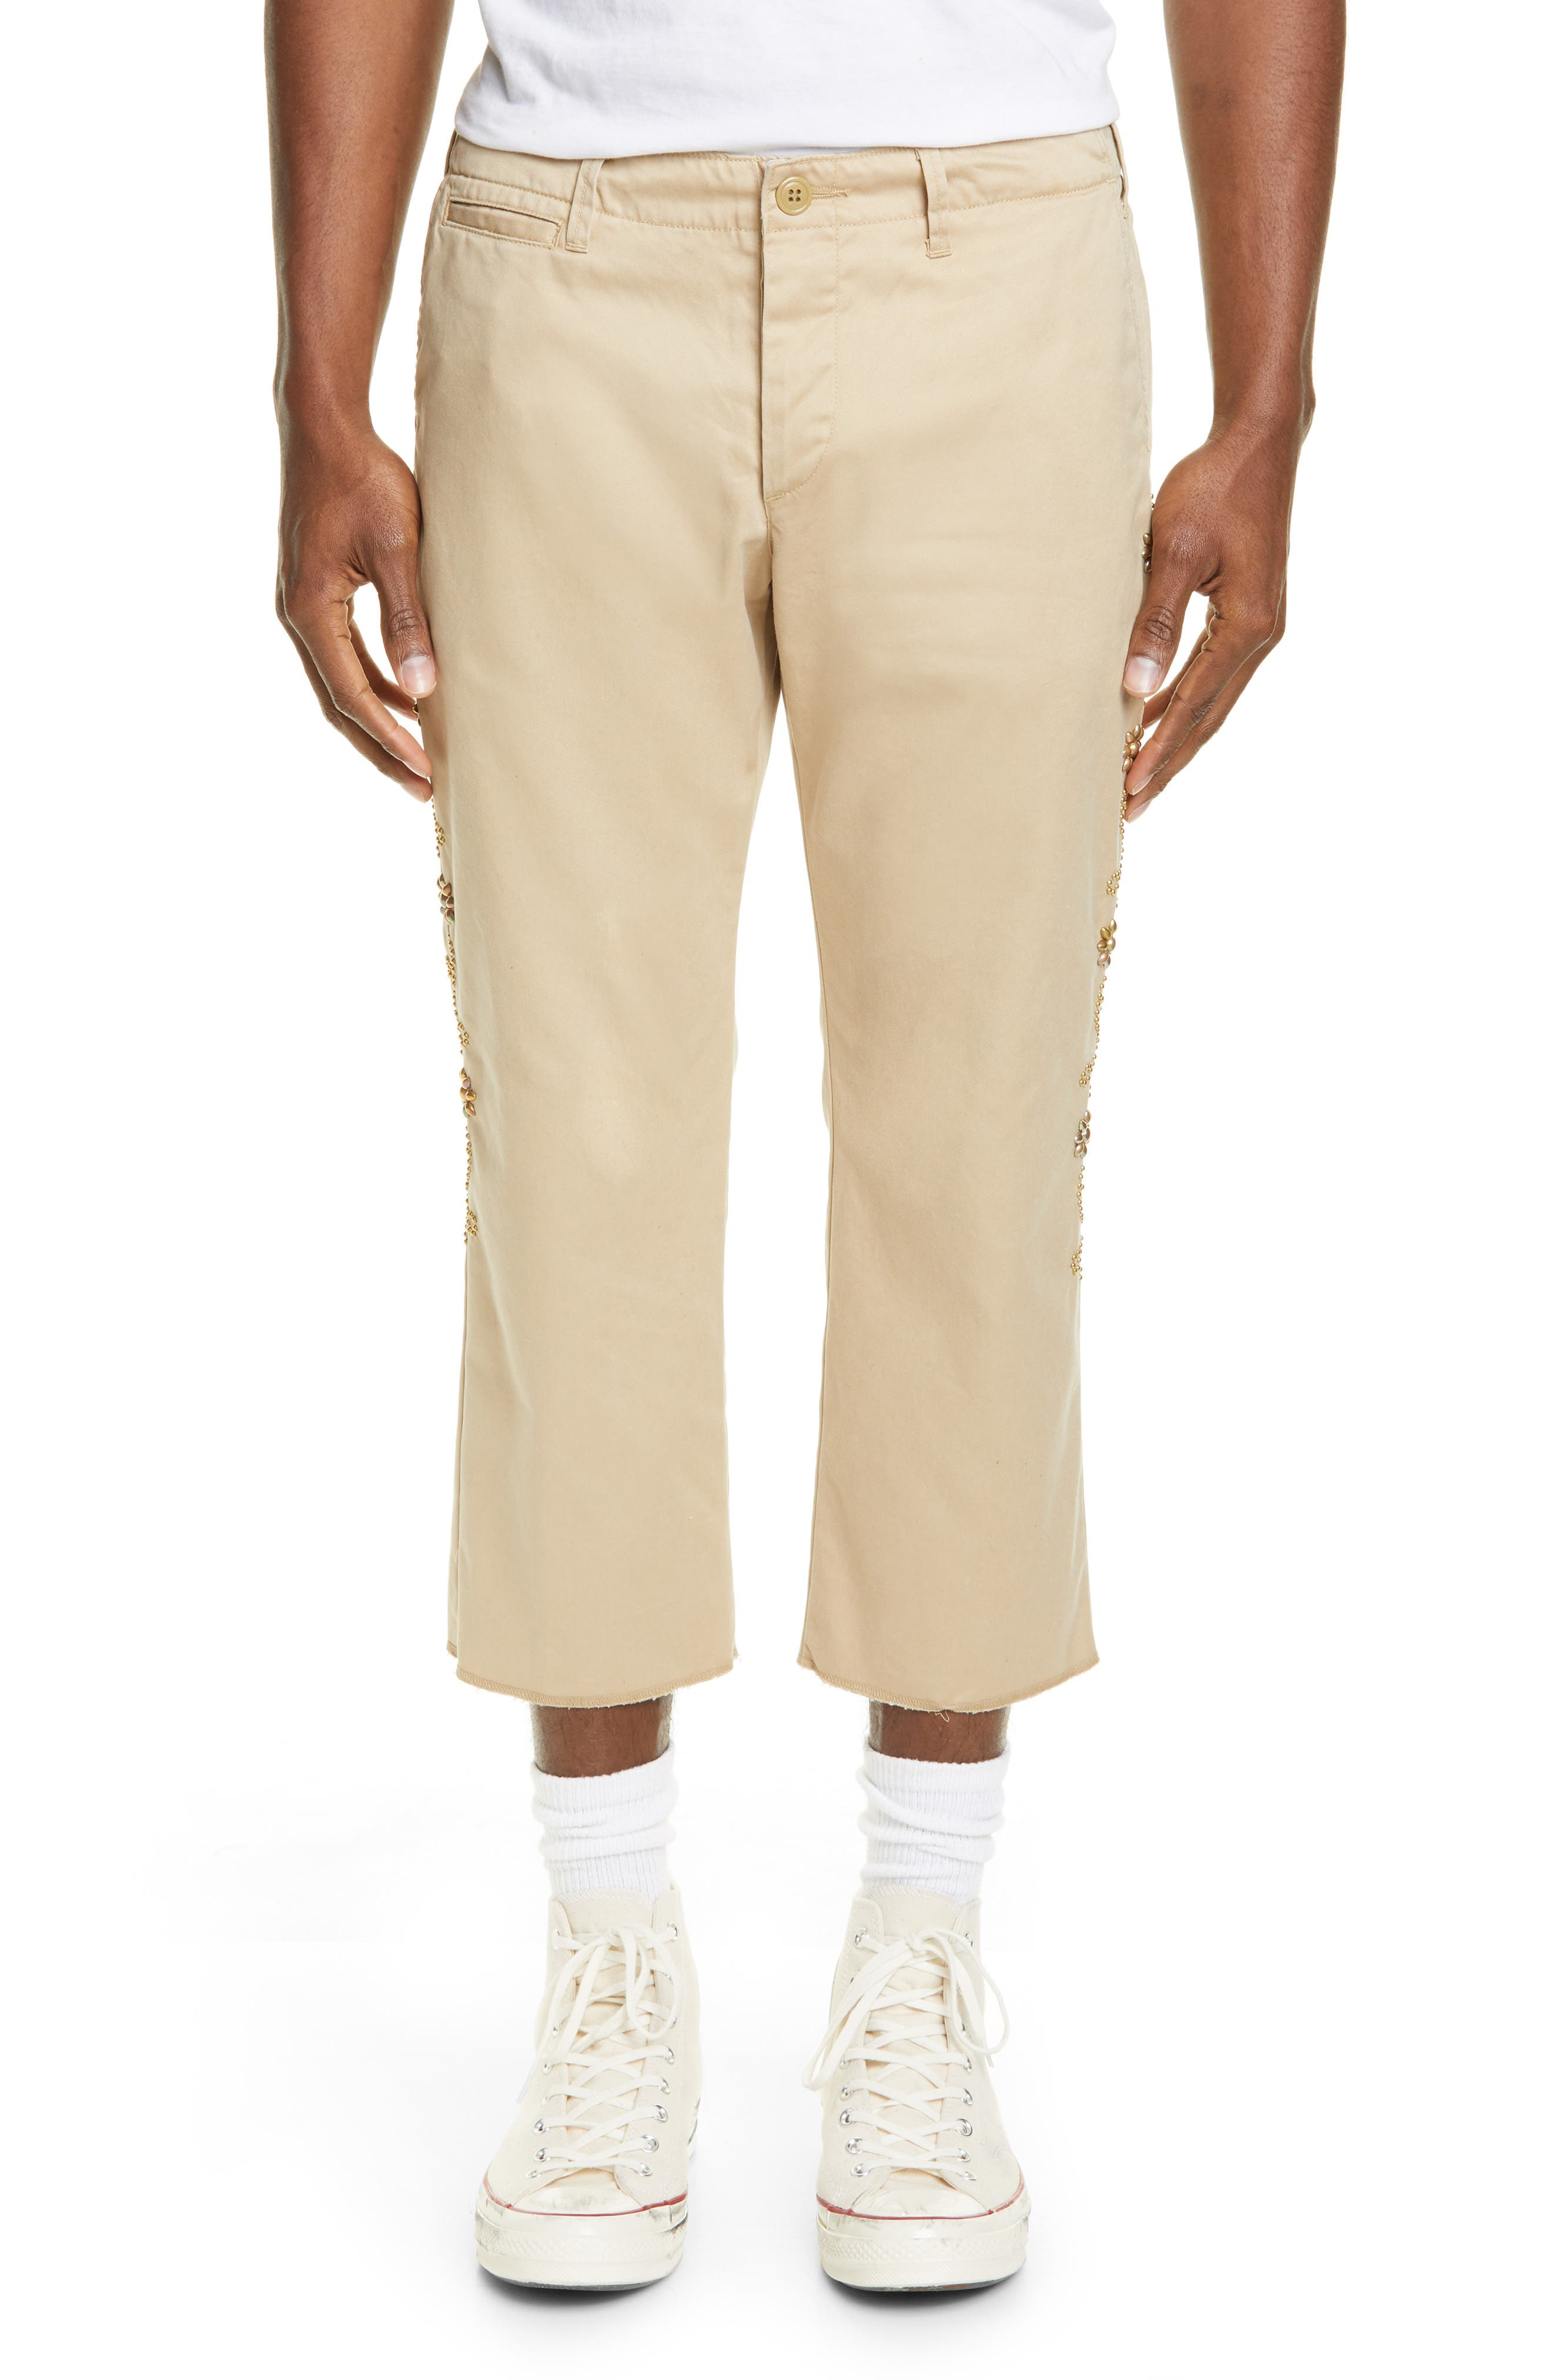 Remi Relief Flower Stud Chino Pants, Beige